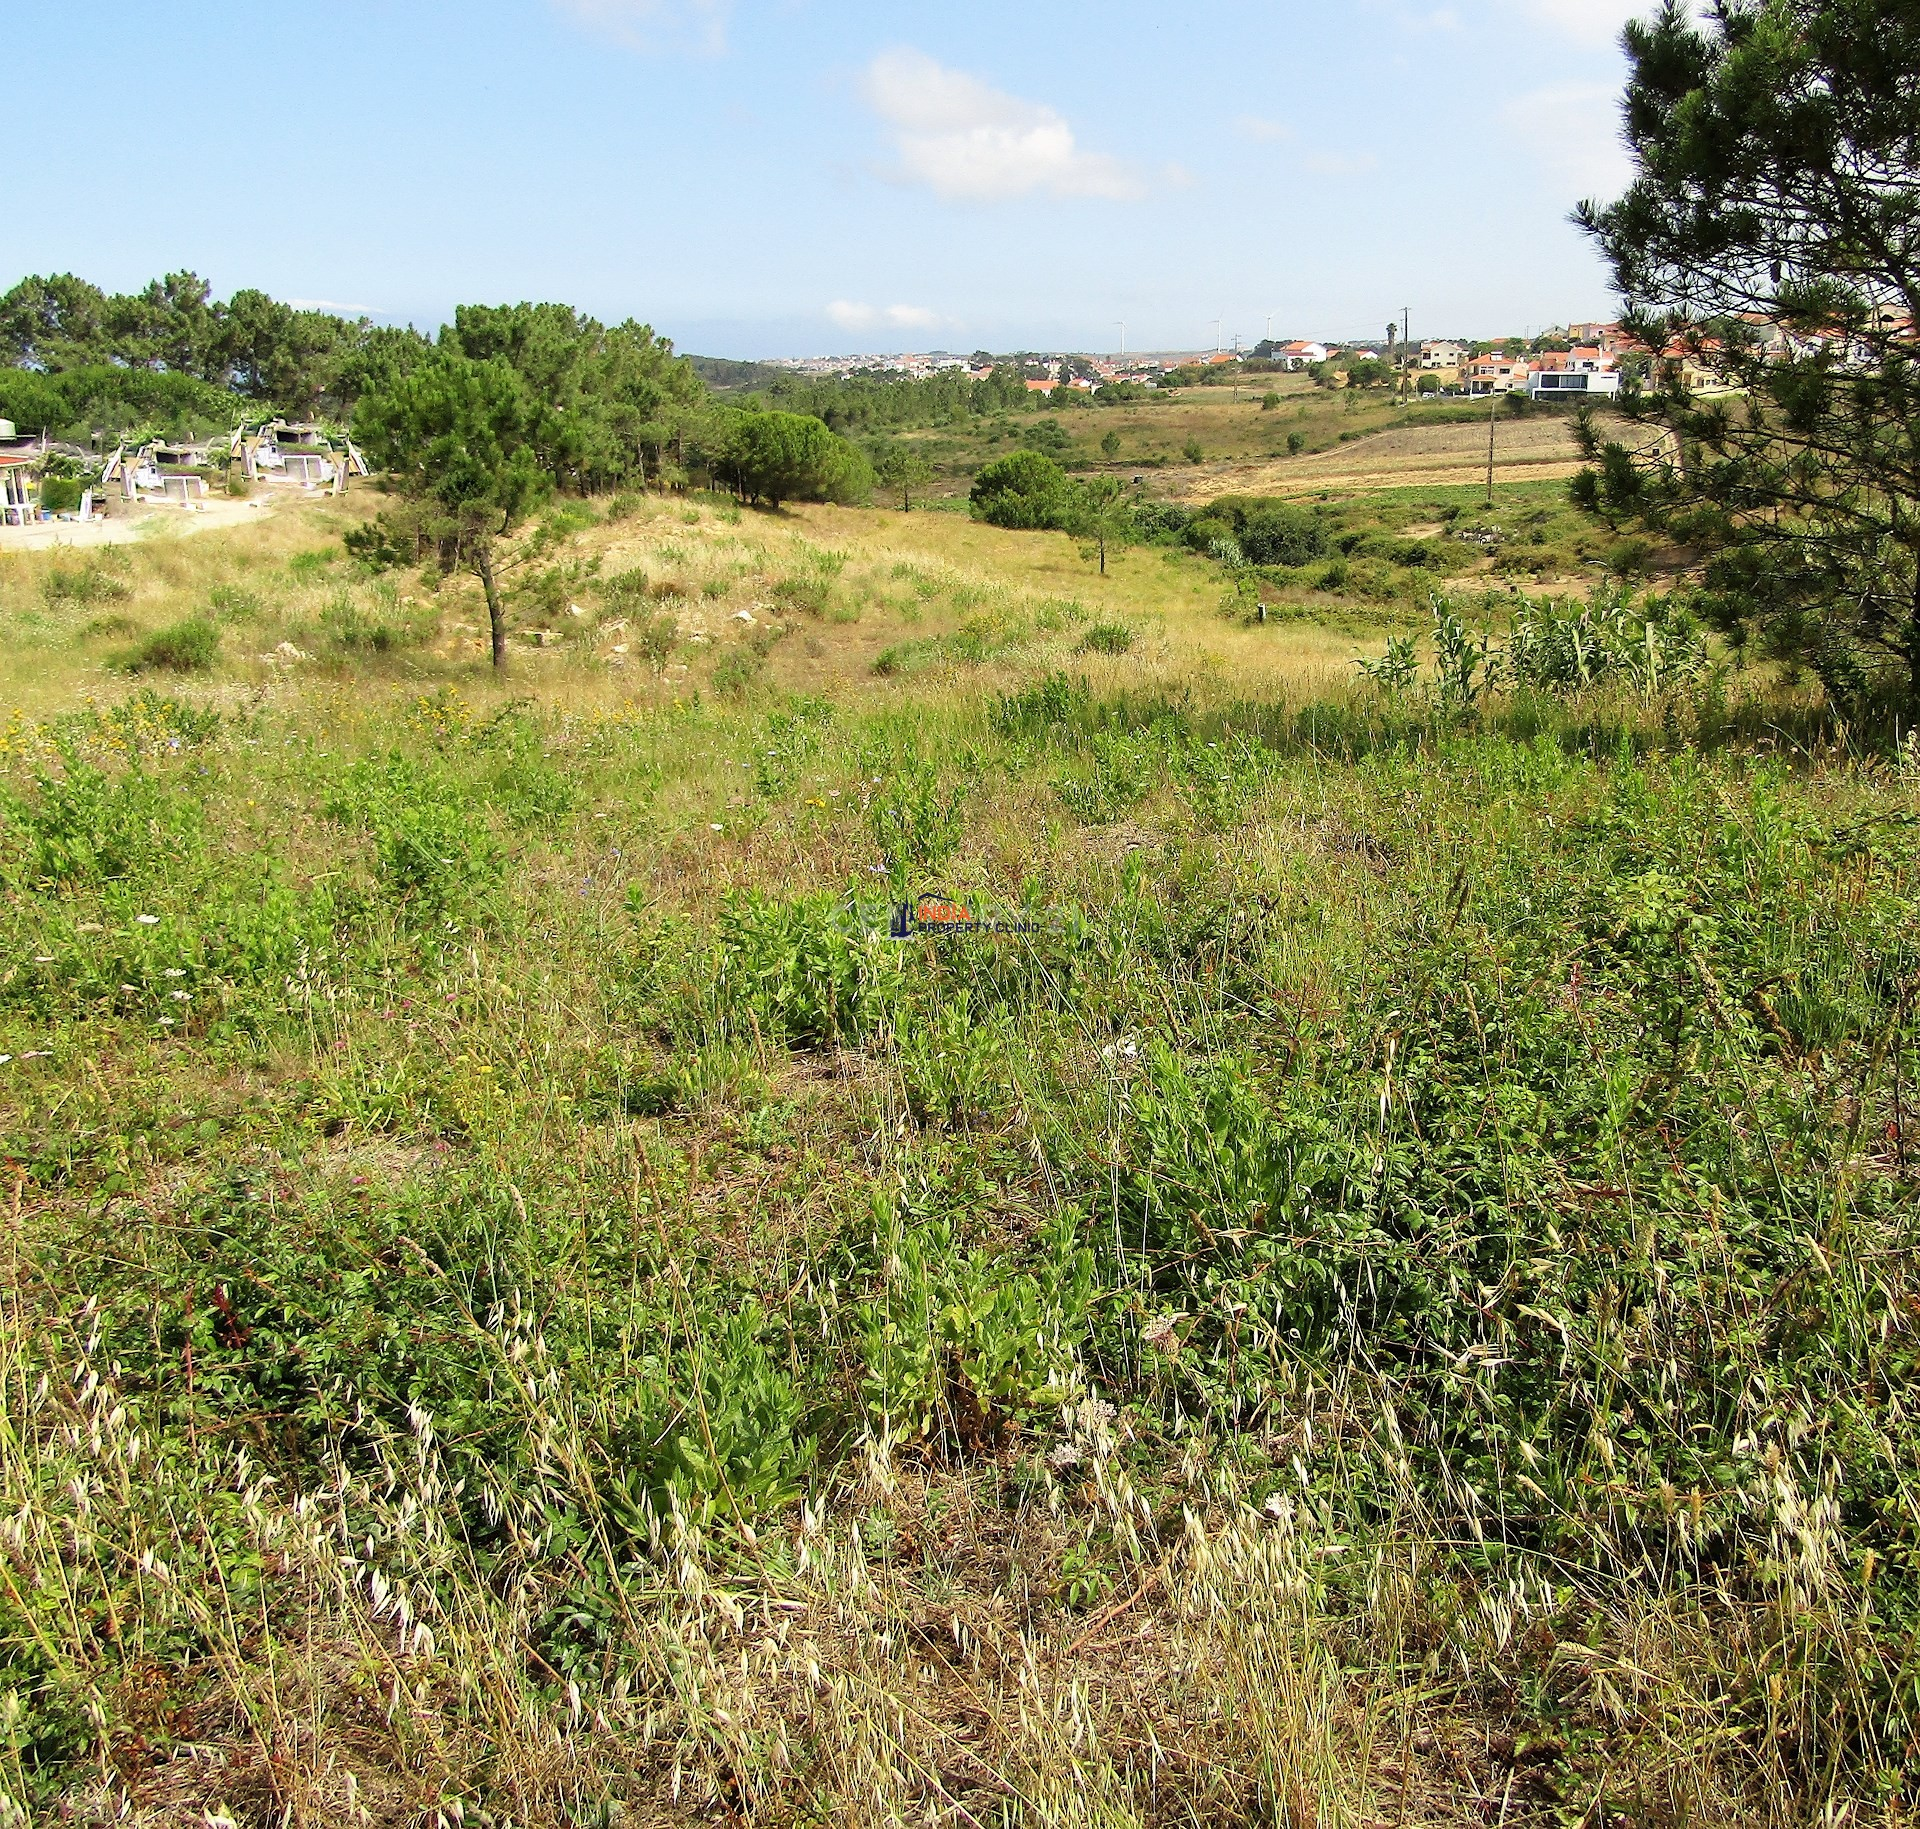 Farm Land For Sale in Mafra